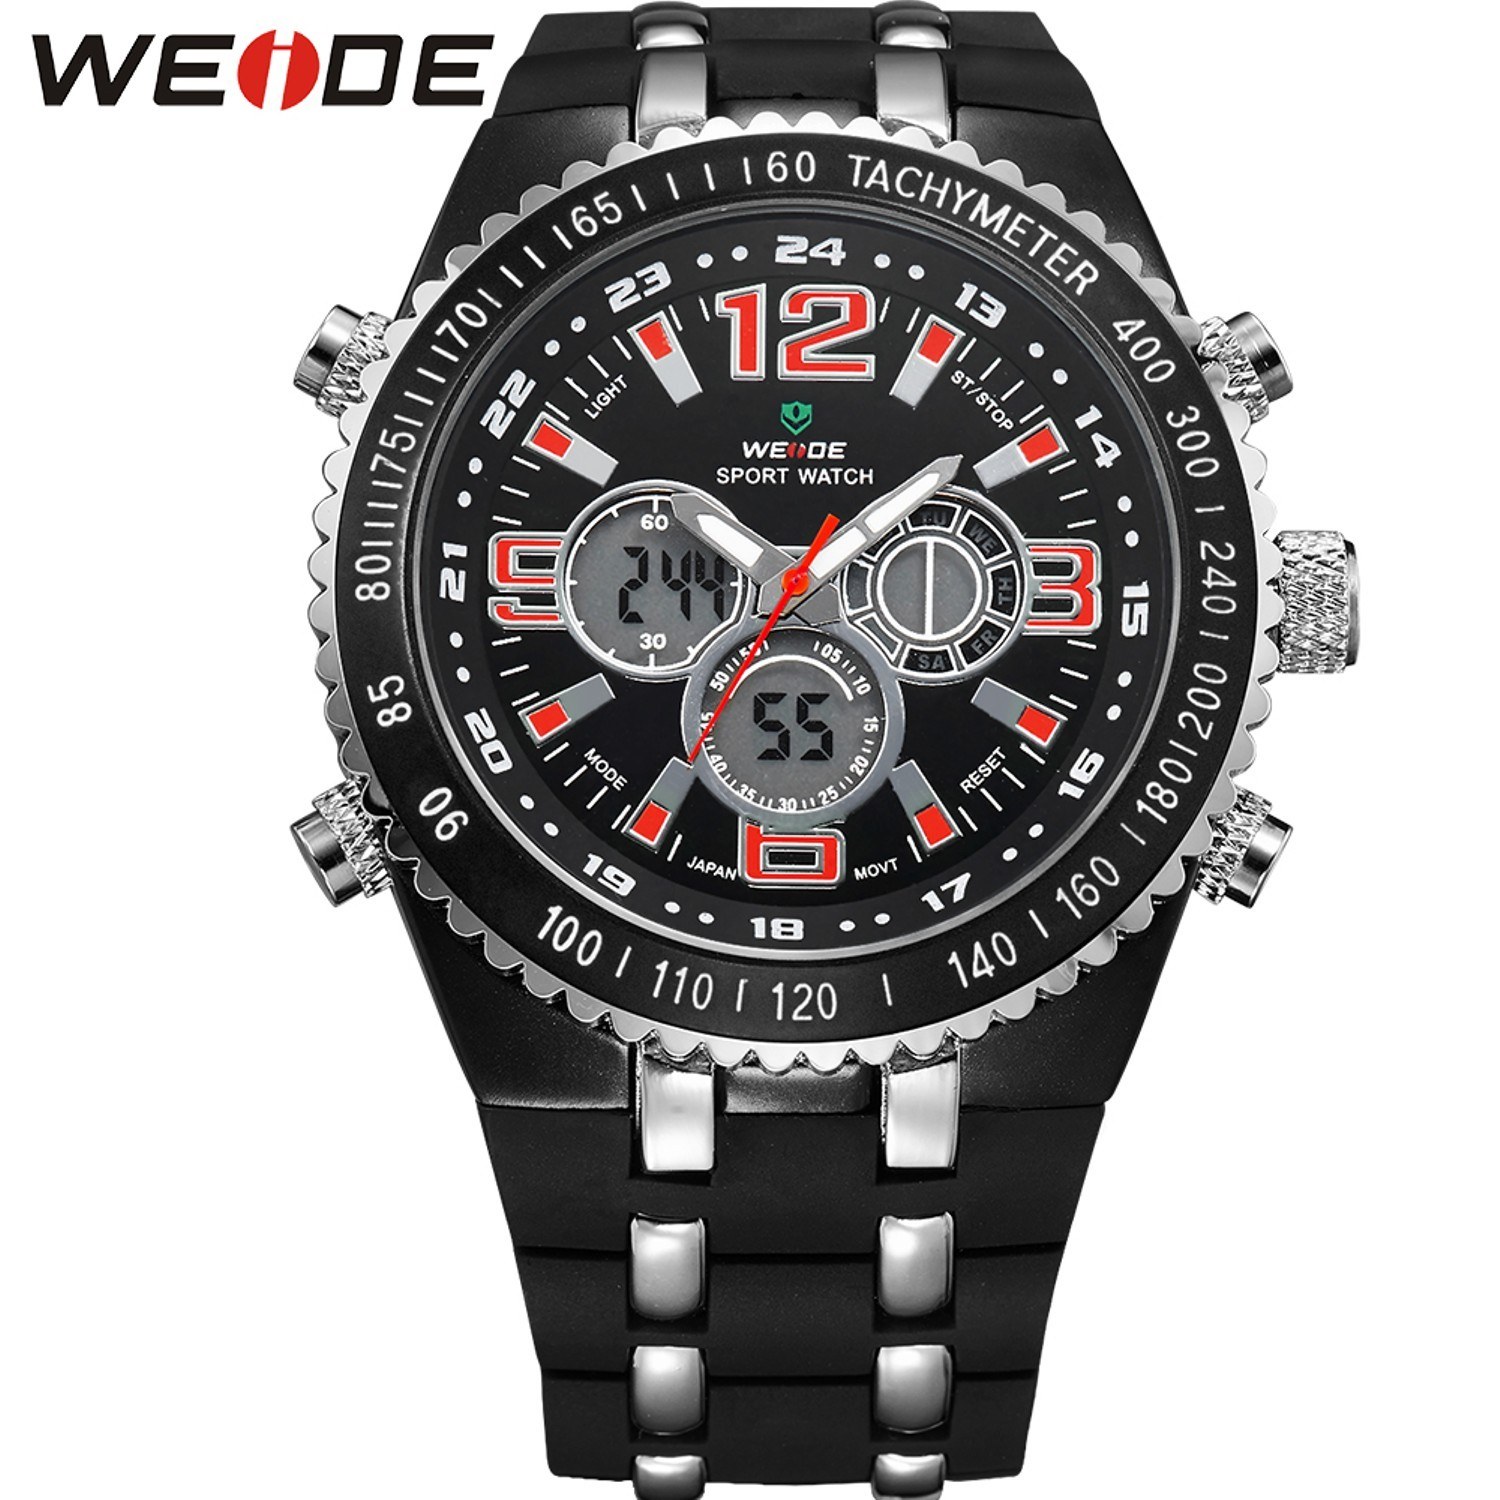 WEIDE-Big-Dial-Mens-Sport-Watch-Waterproof-Quartz-Analog-Digital-Dual-Time-Display-PU-Bands-Multi_1500x1500_STRETCH_343.jpg